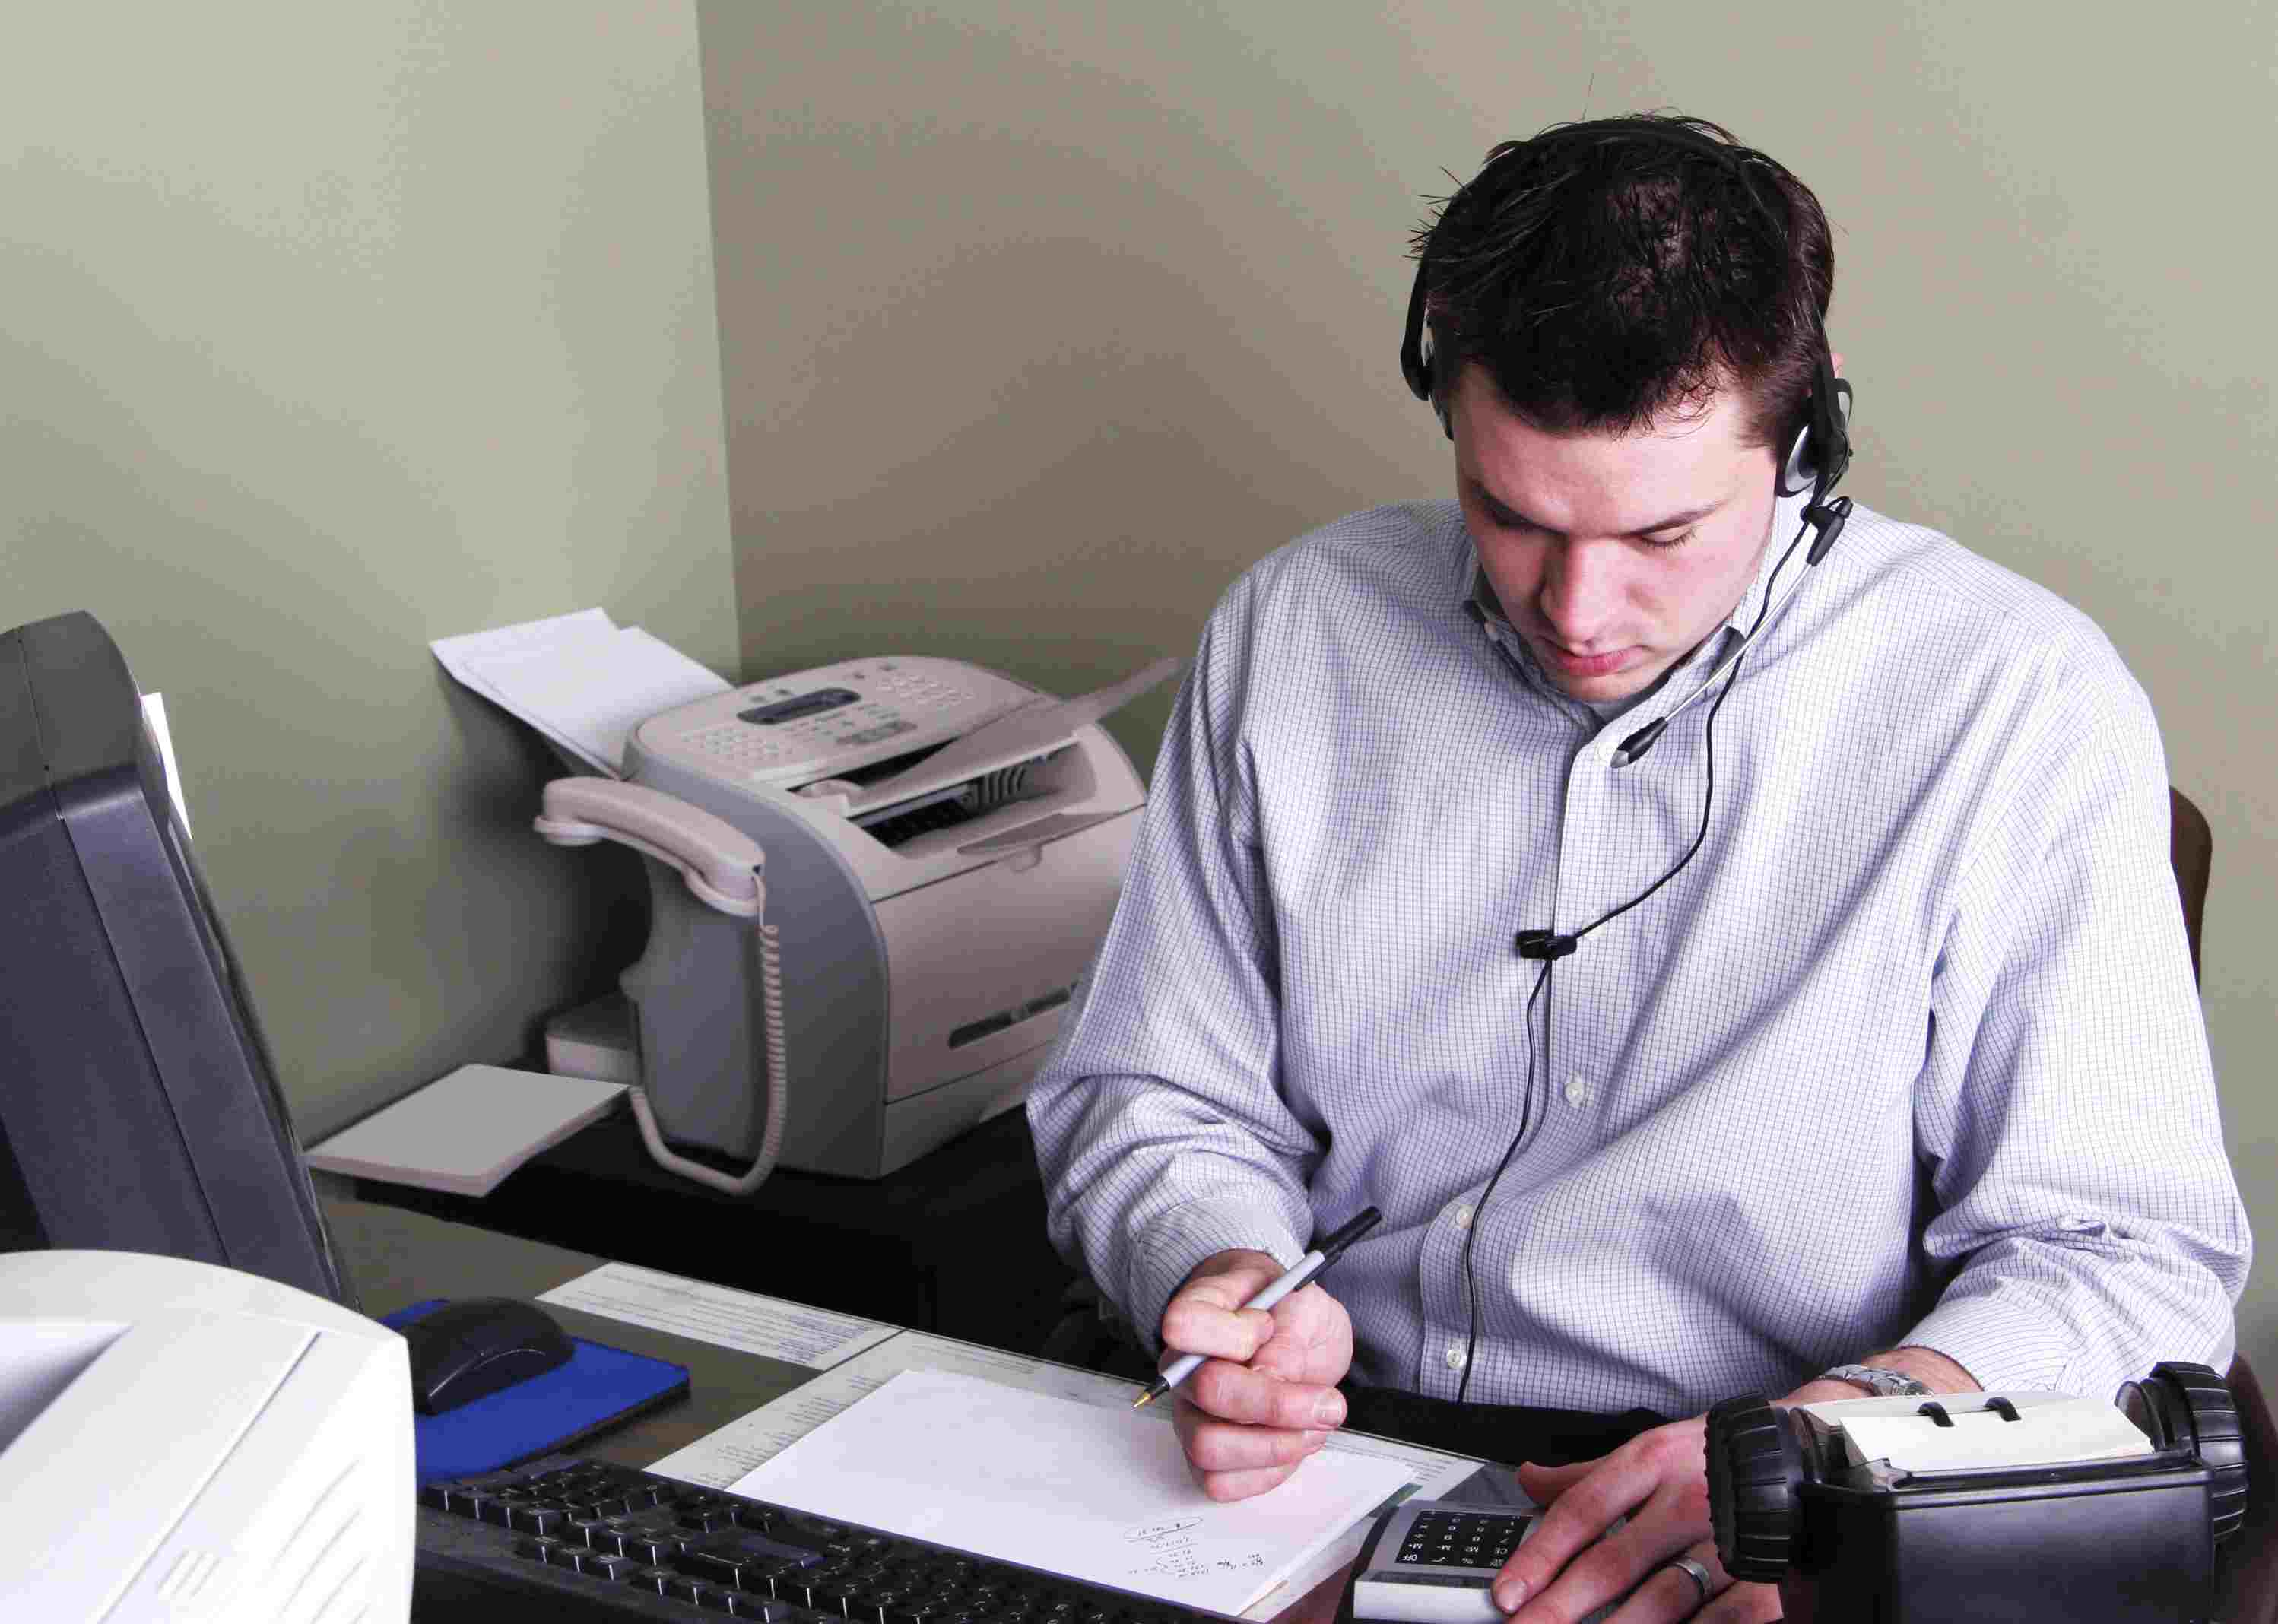 Young man working on income taxes at his desk